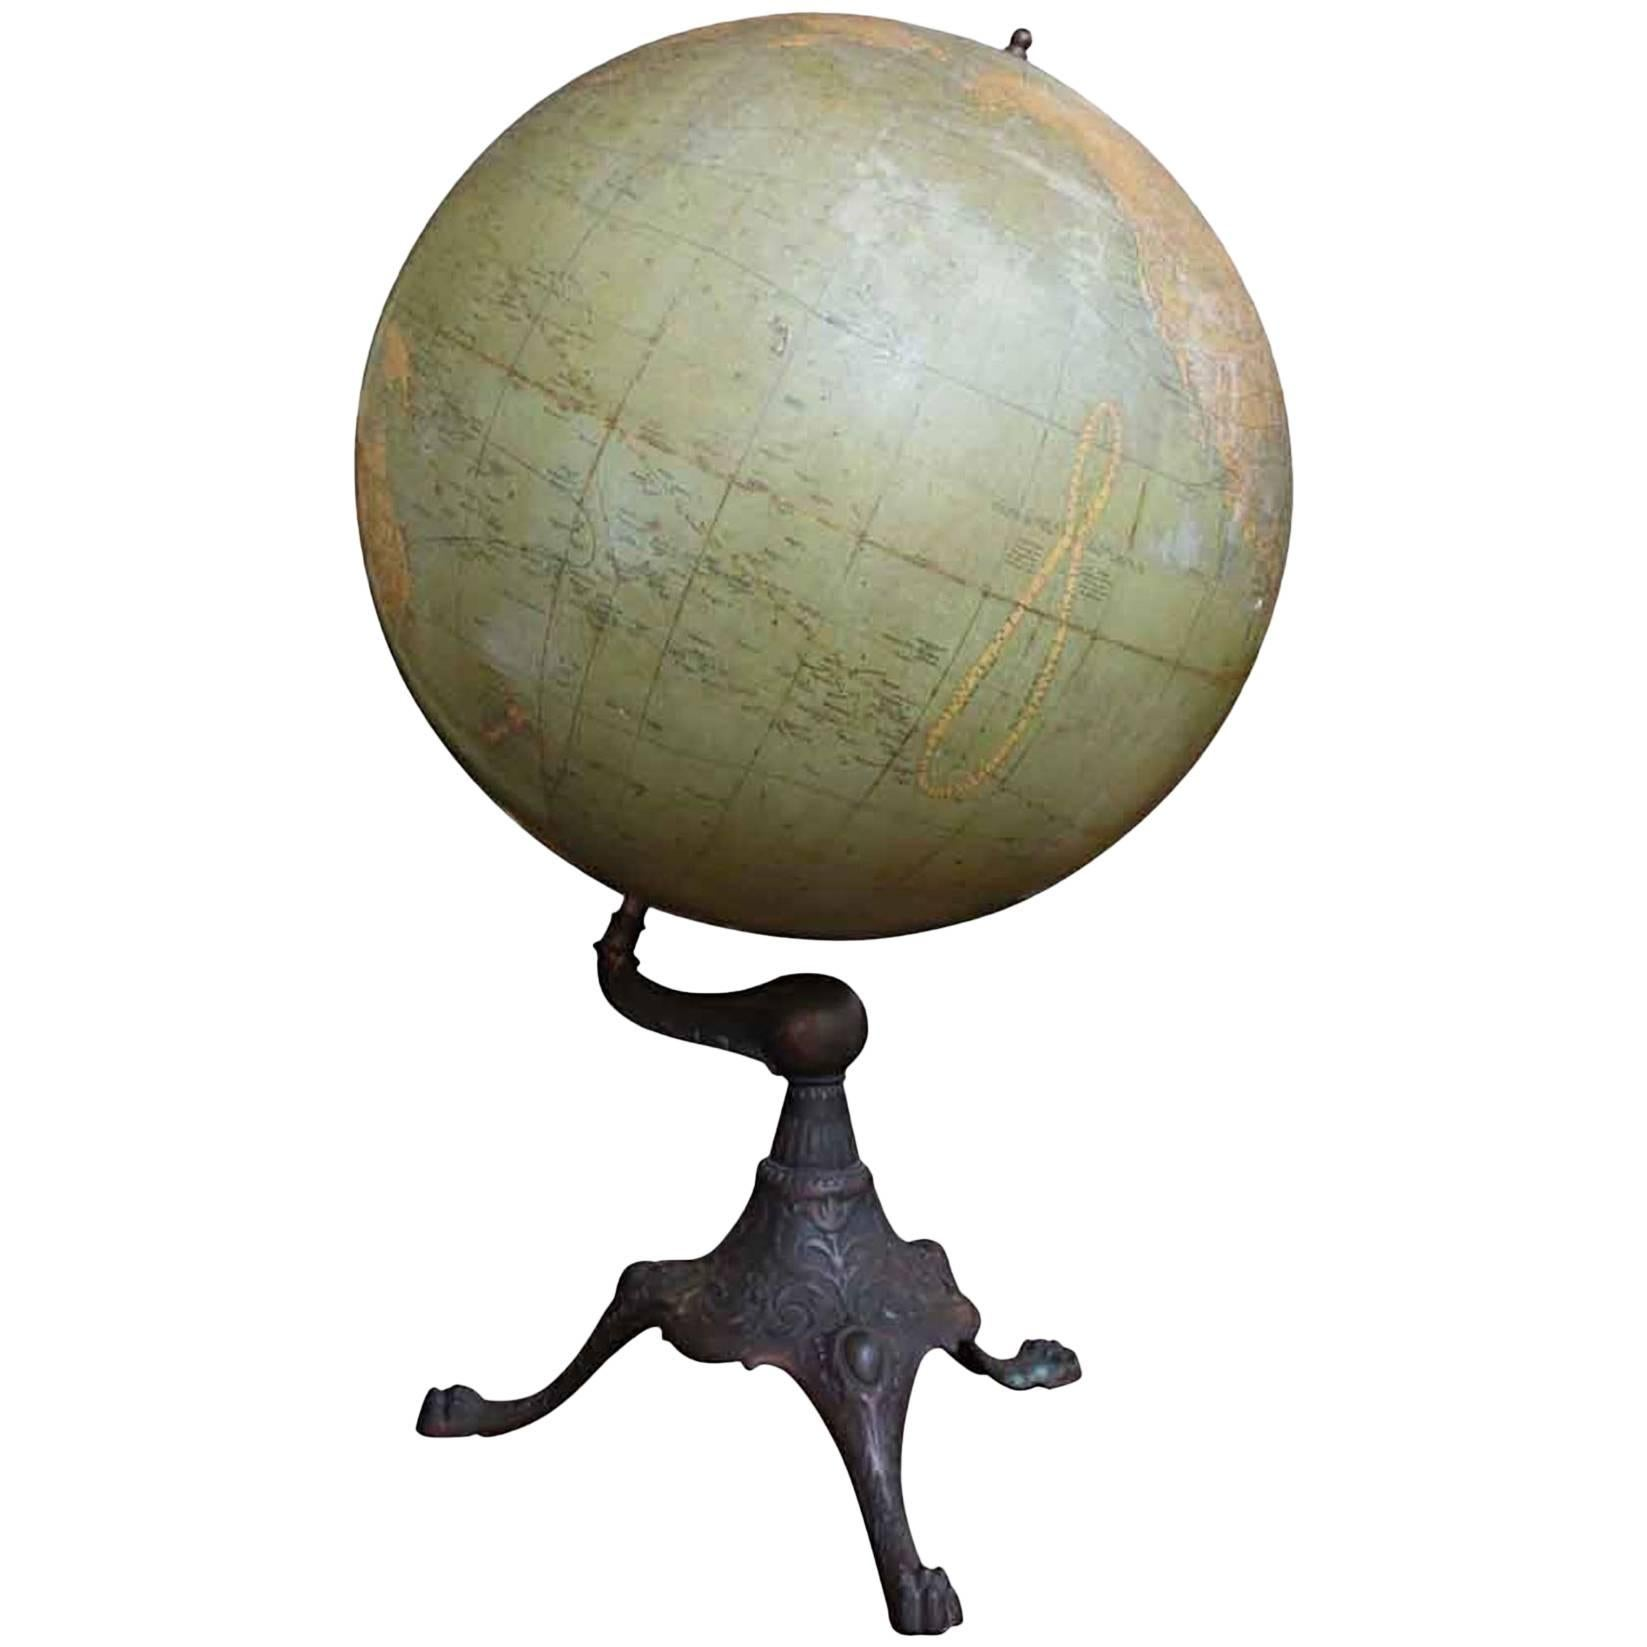 1920s Library or Classroom Terrestrial World Globe with a Cast Iron Base